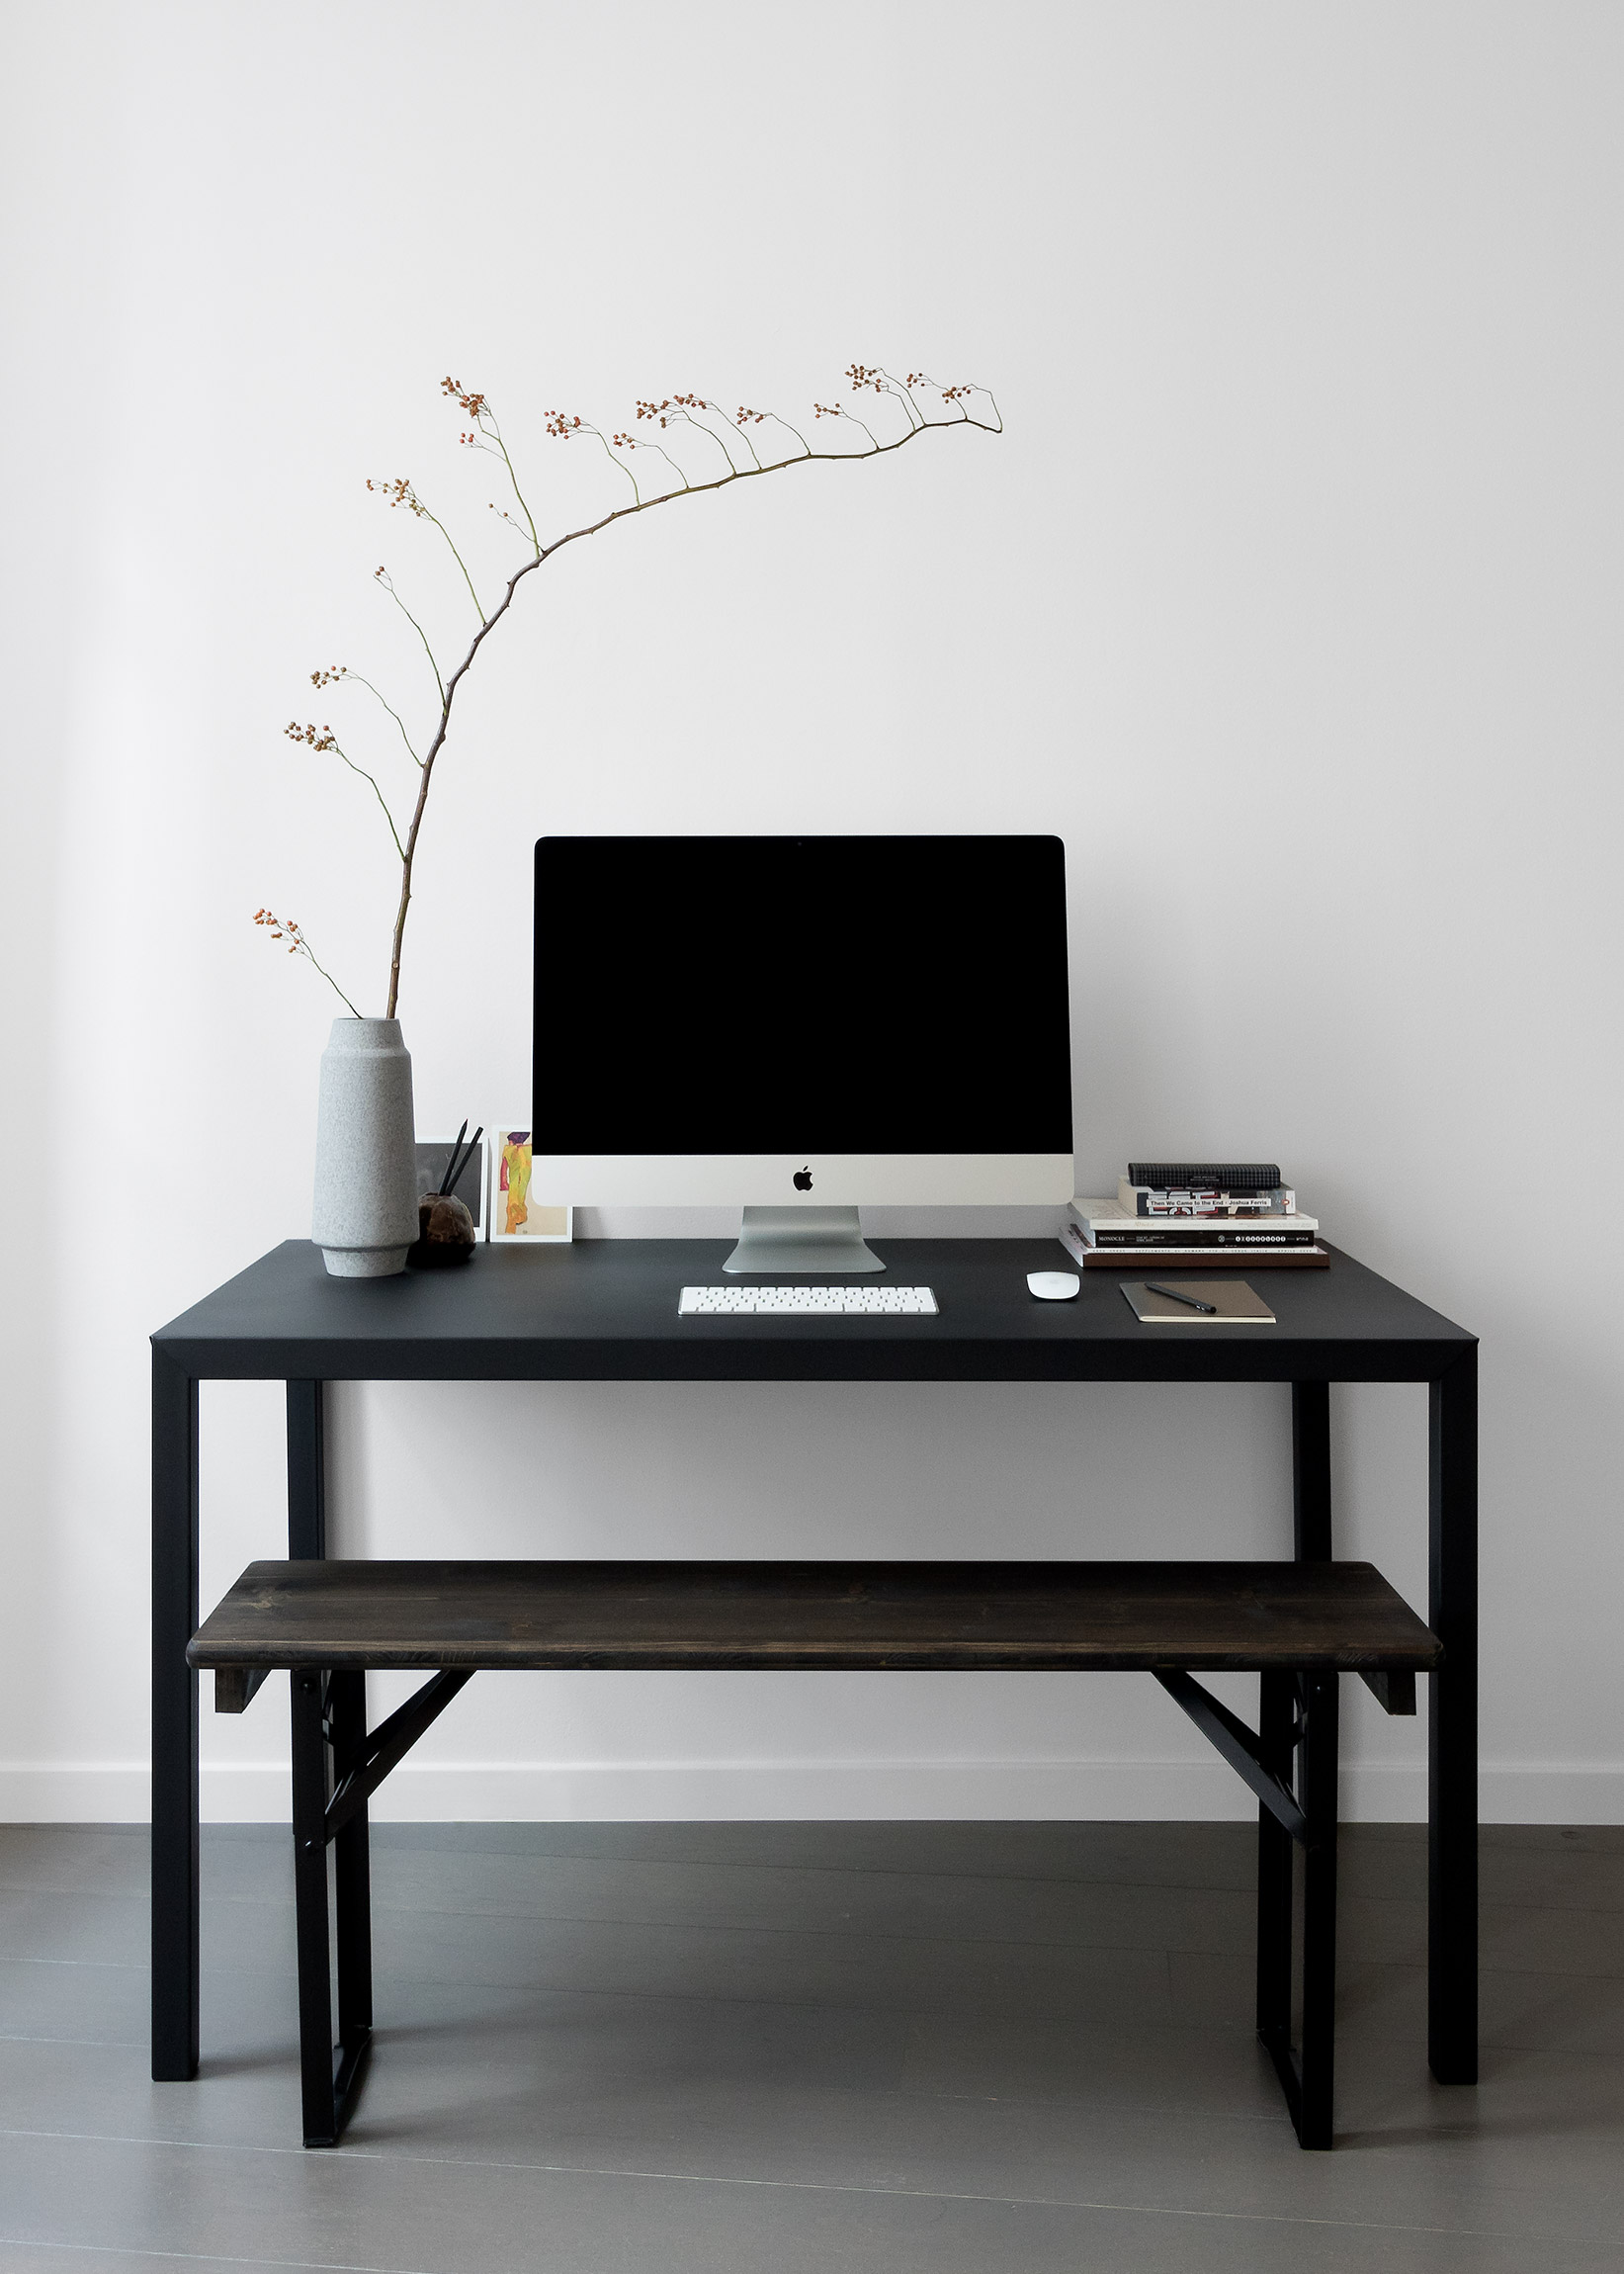 Japanese style home study. Black metal desk with iMAC and ikebana branch